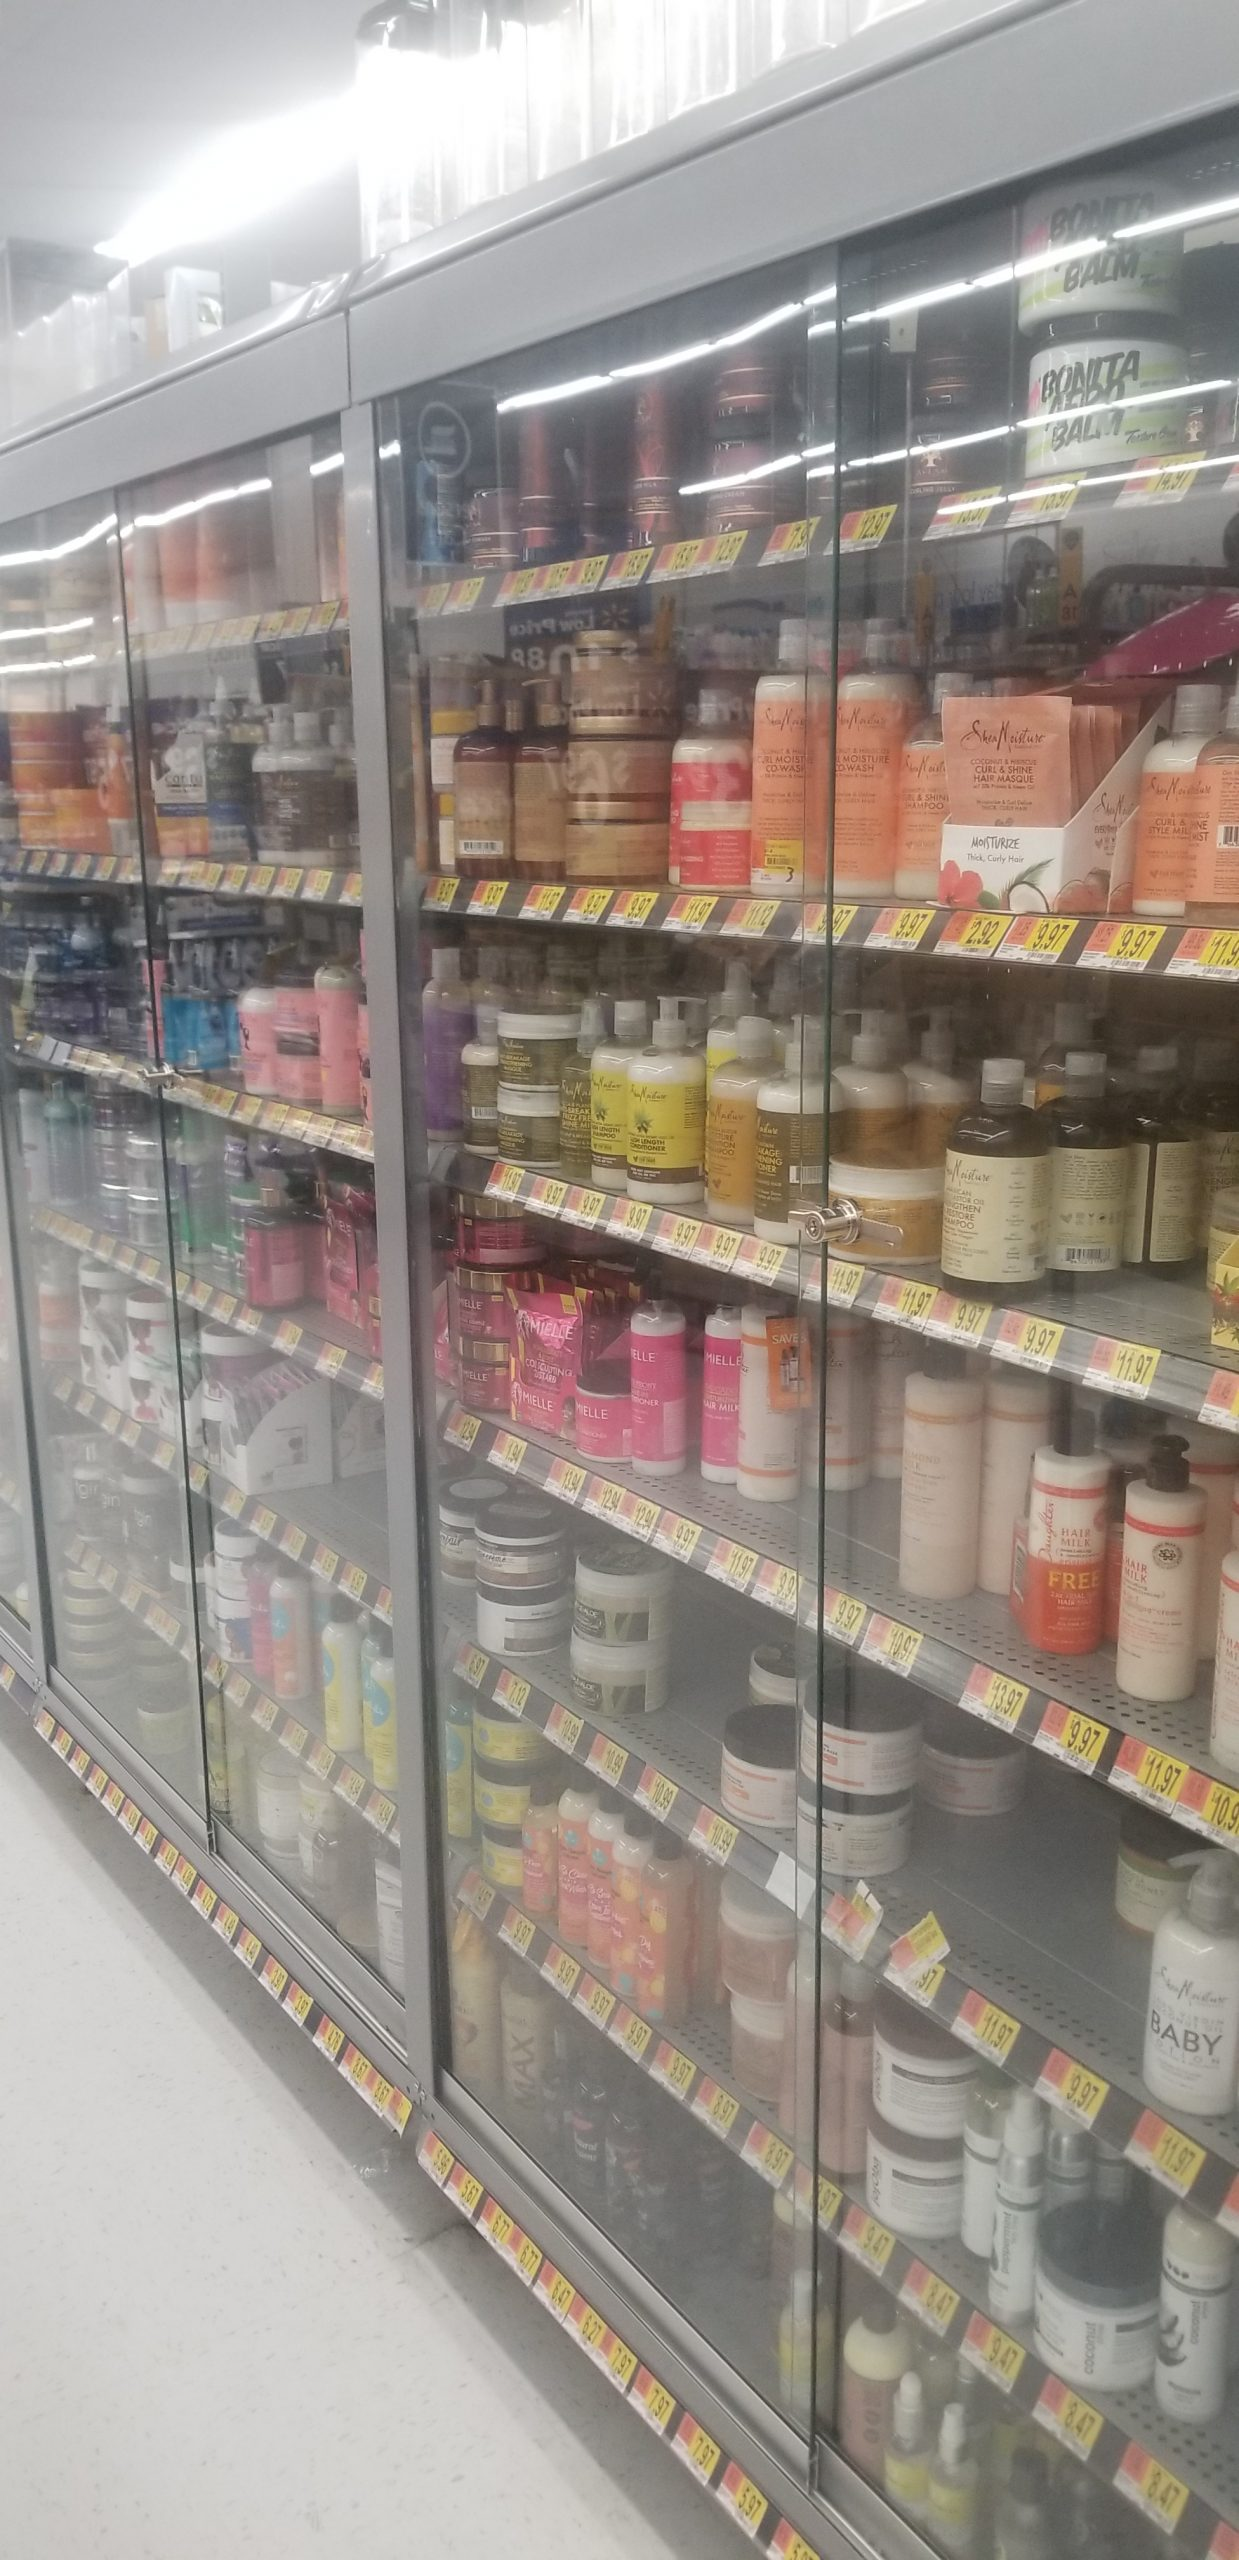 Free the Loc(k)s: Why Is Walmart Locking up Black Hair Products?